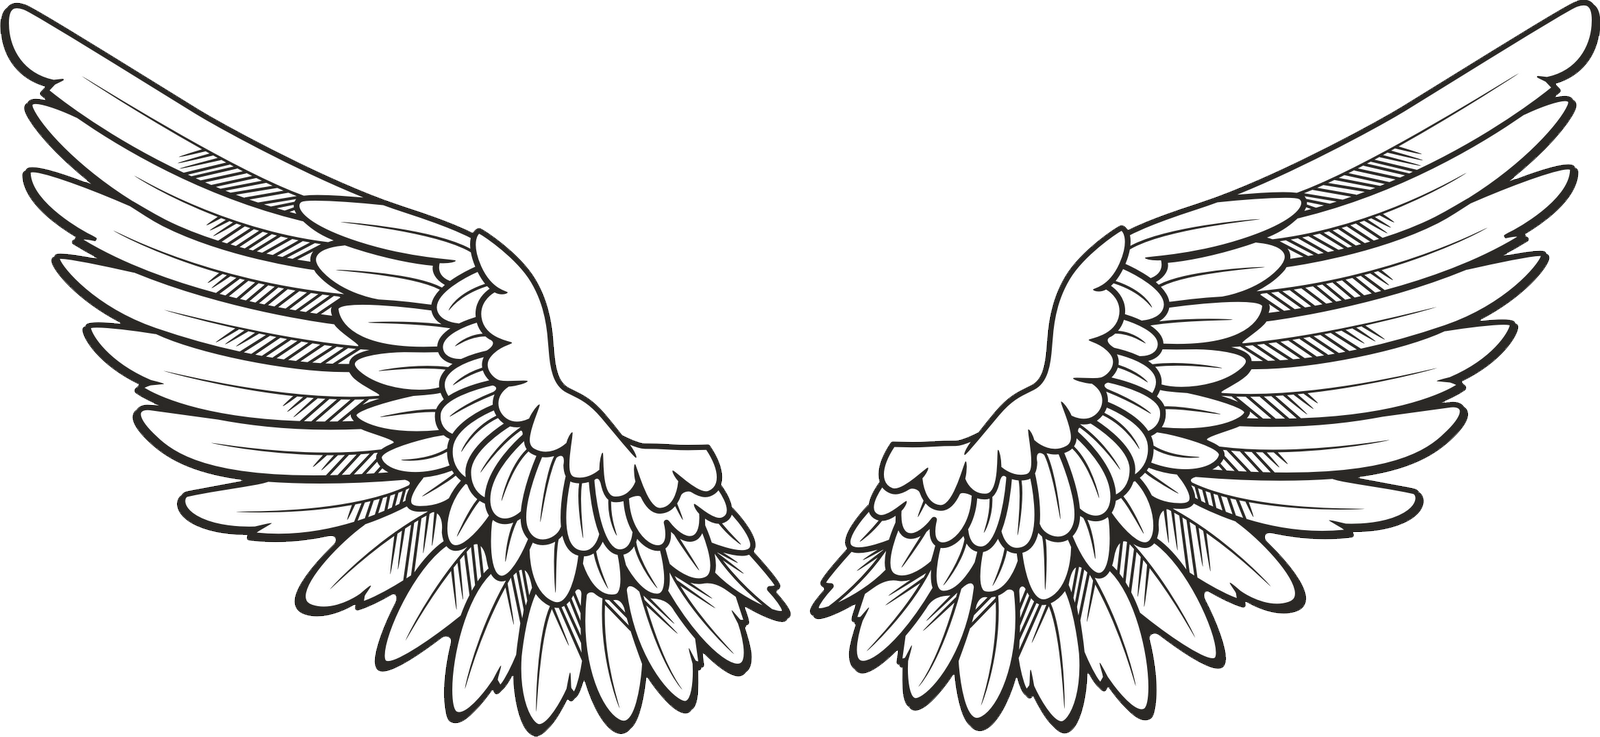 Angel Halo Wings Free Download PNG Image